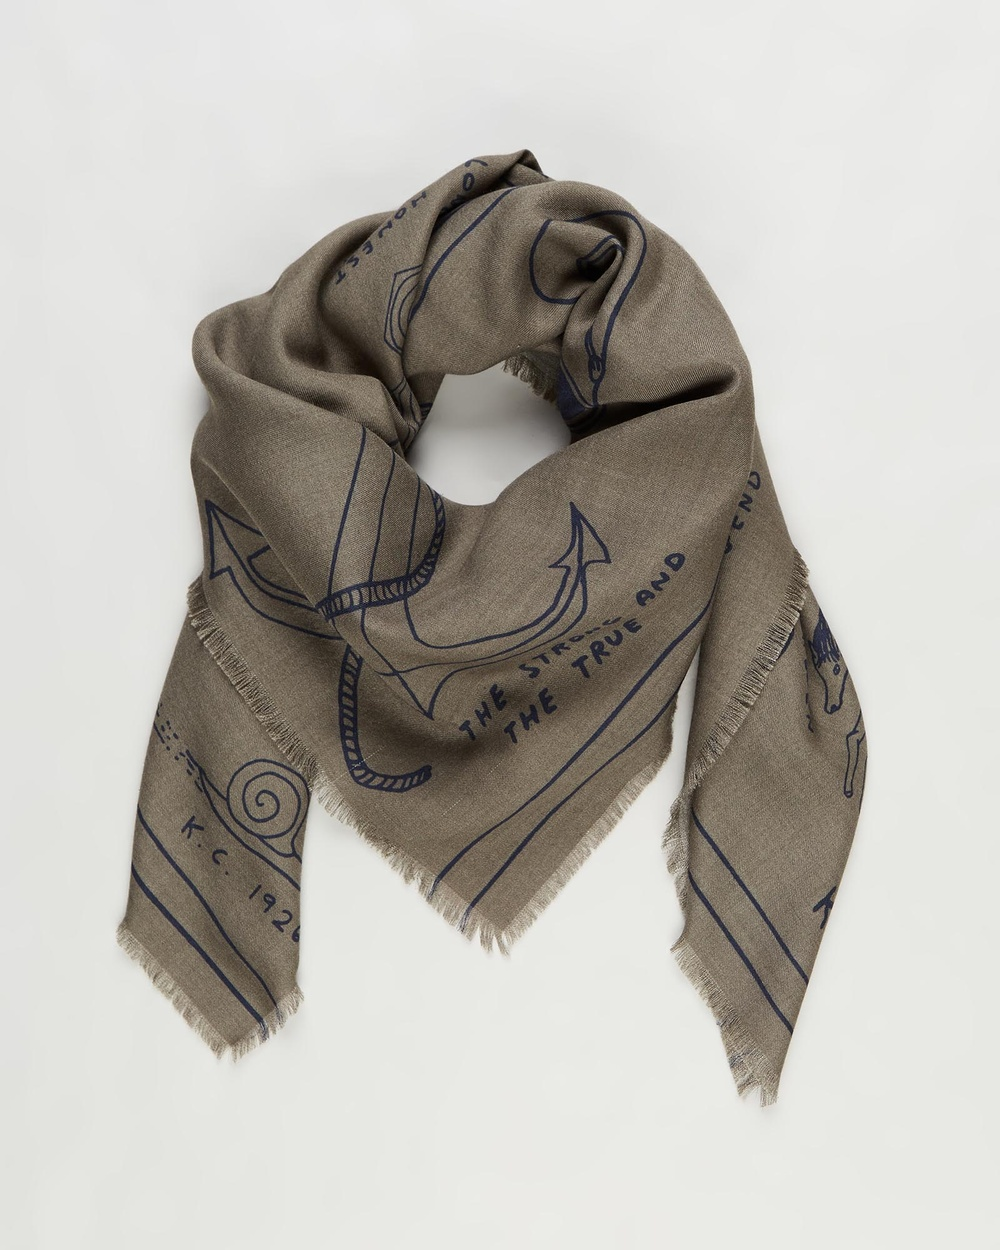 Kent and Curwen Printed Statement Scarf Scarves & Gloves Green